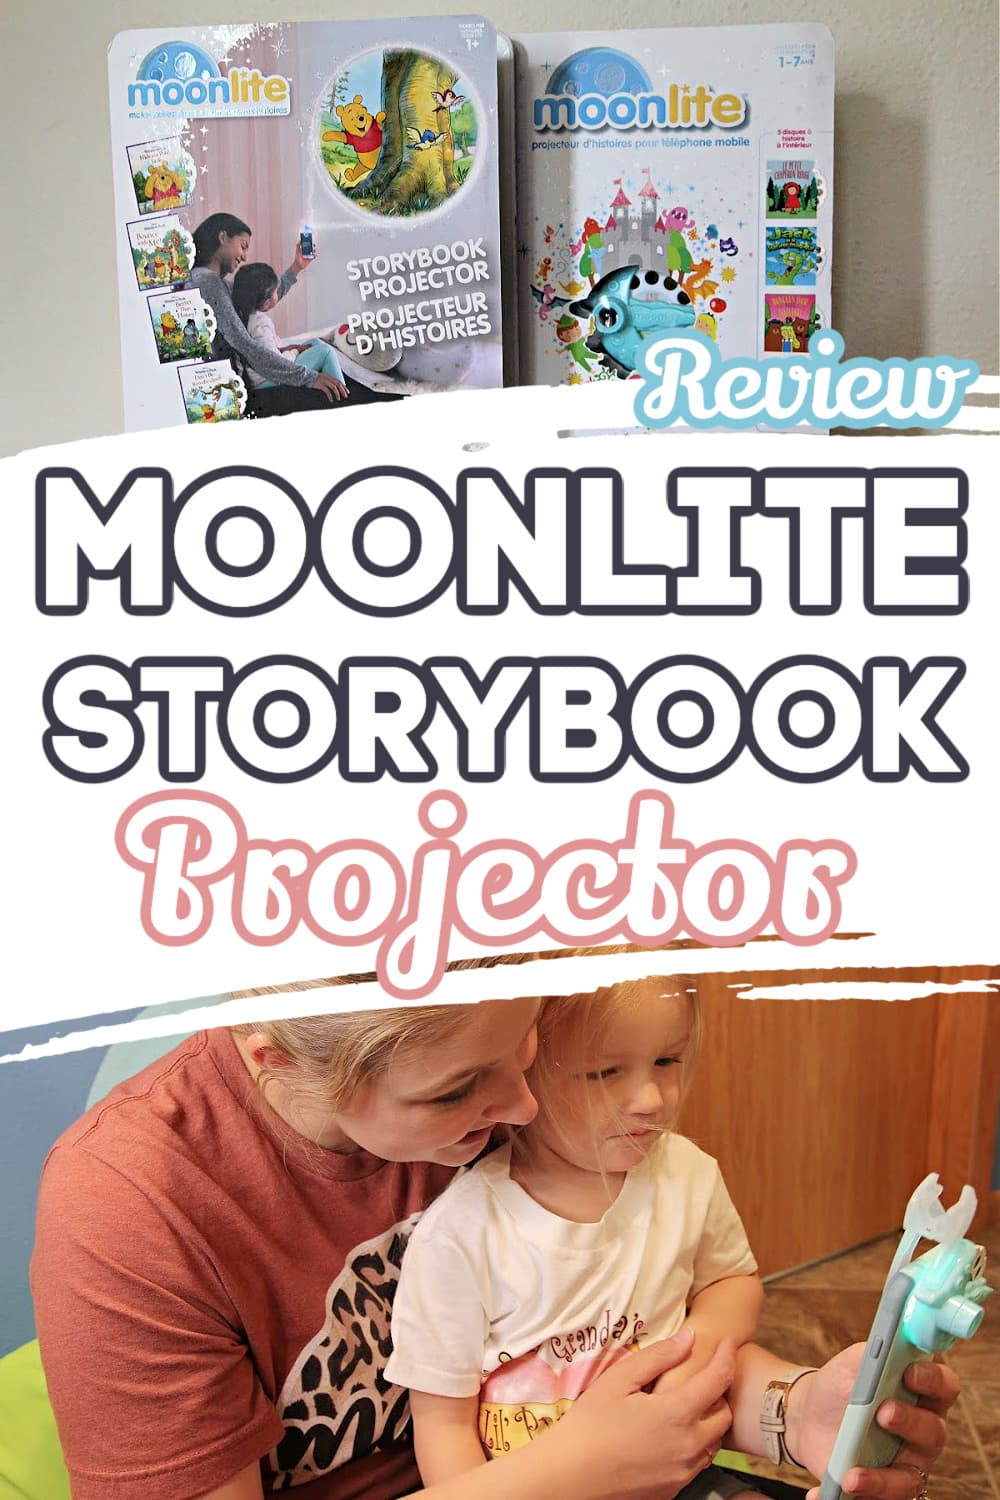 Moonlite Projectors and Mom With Daughter- Moonlite Storybook Projector